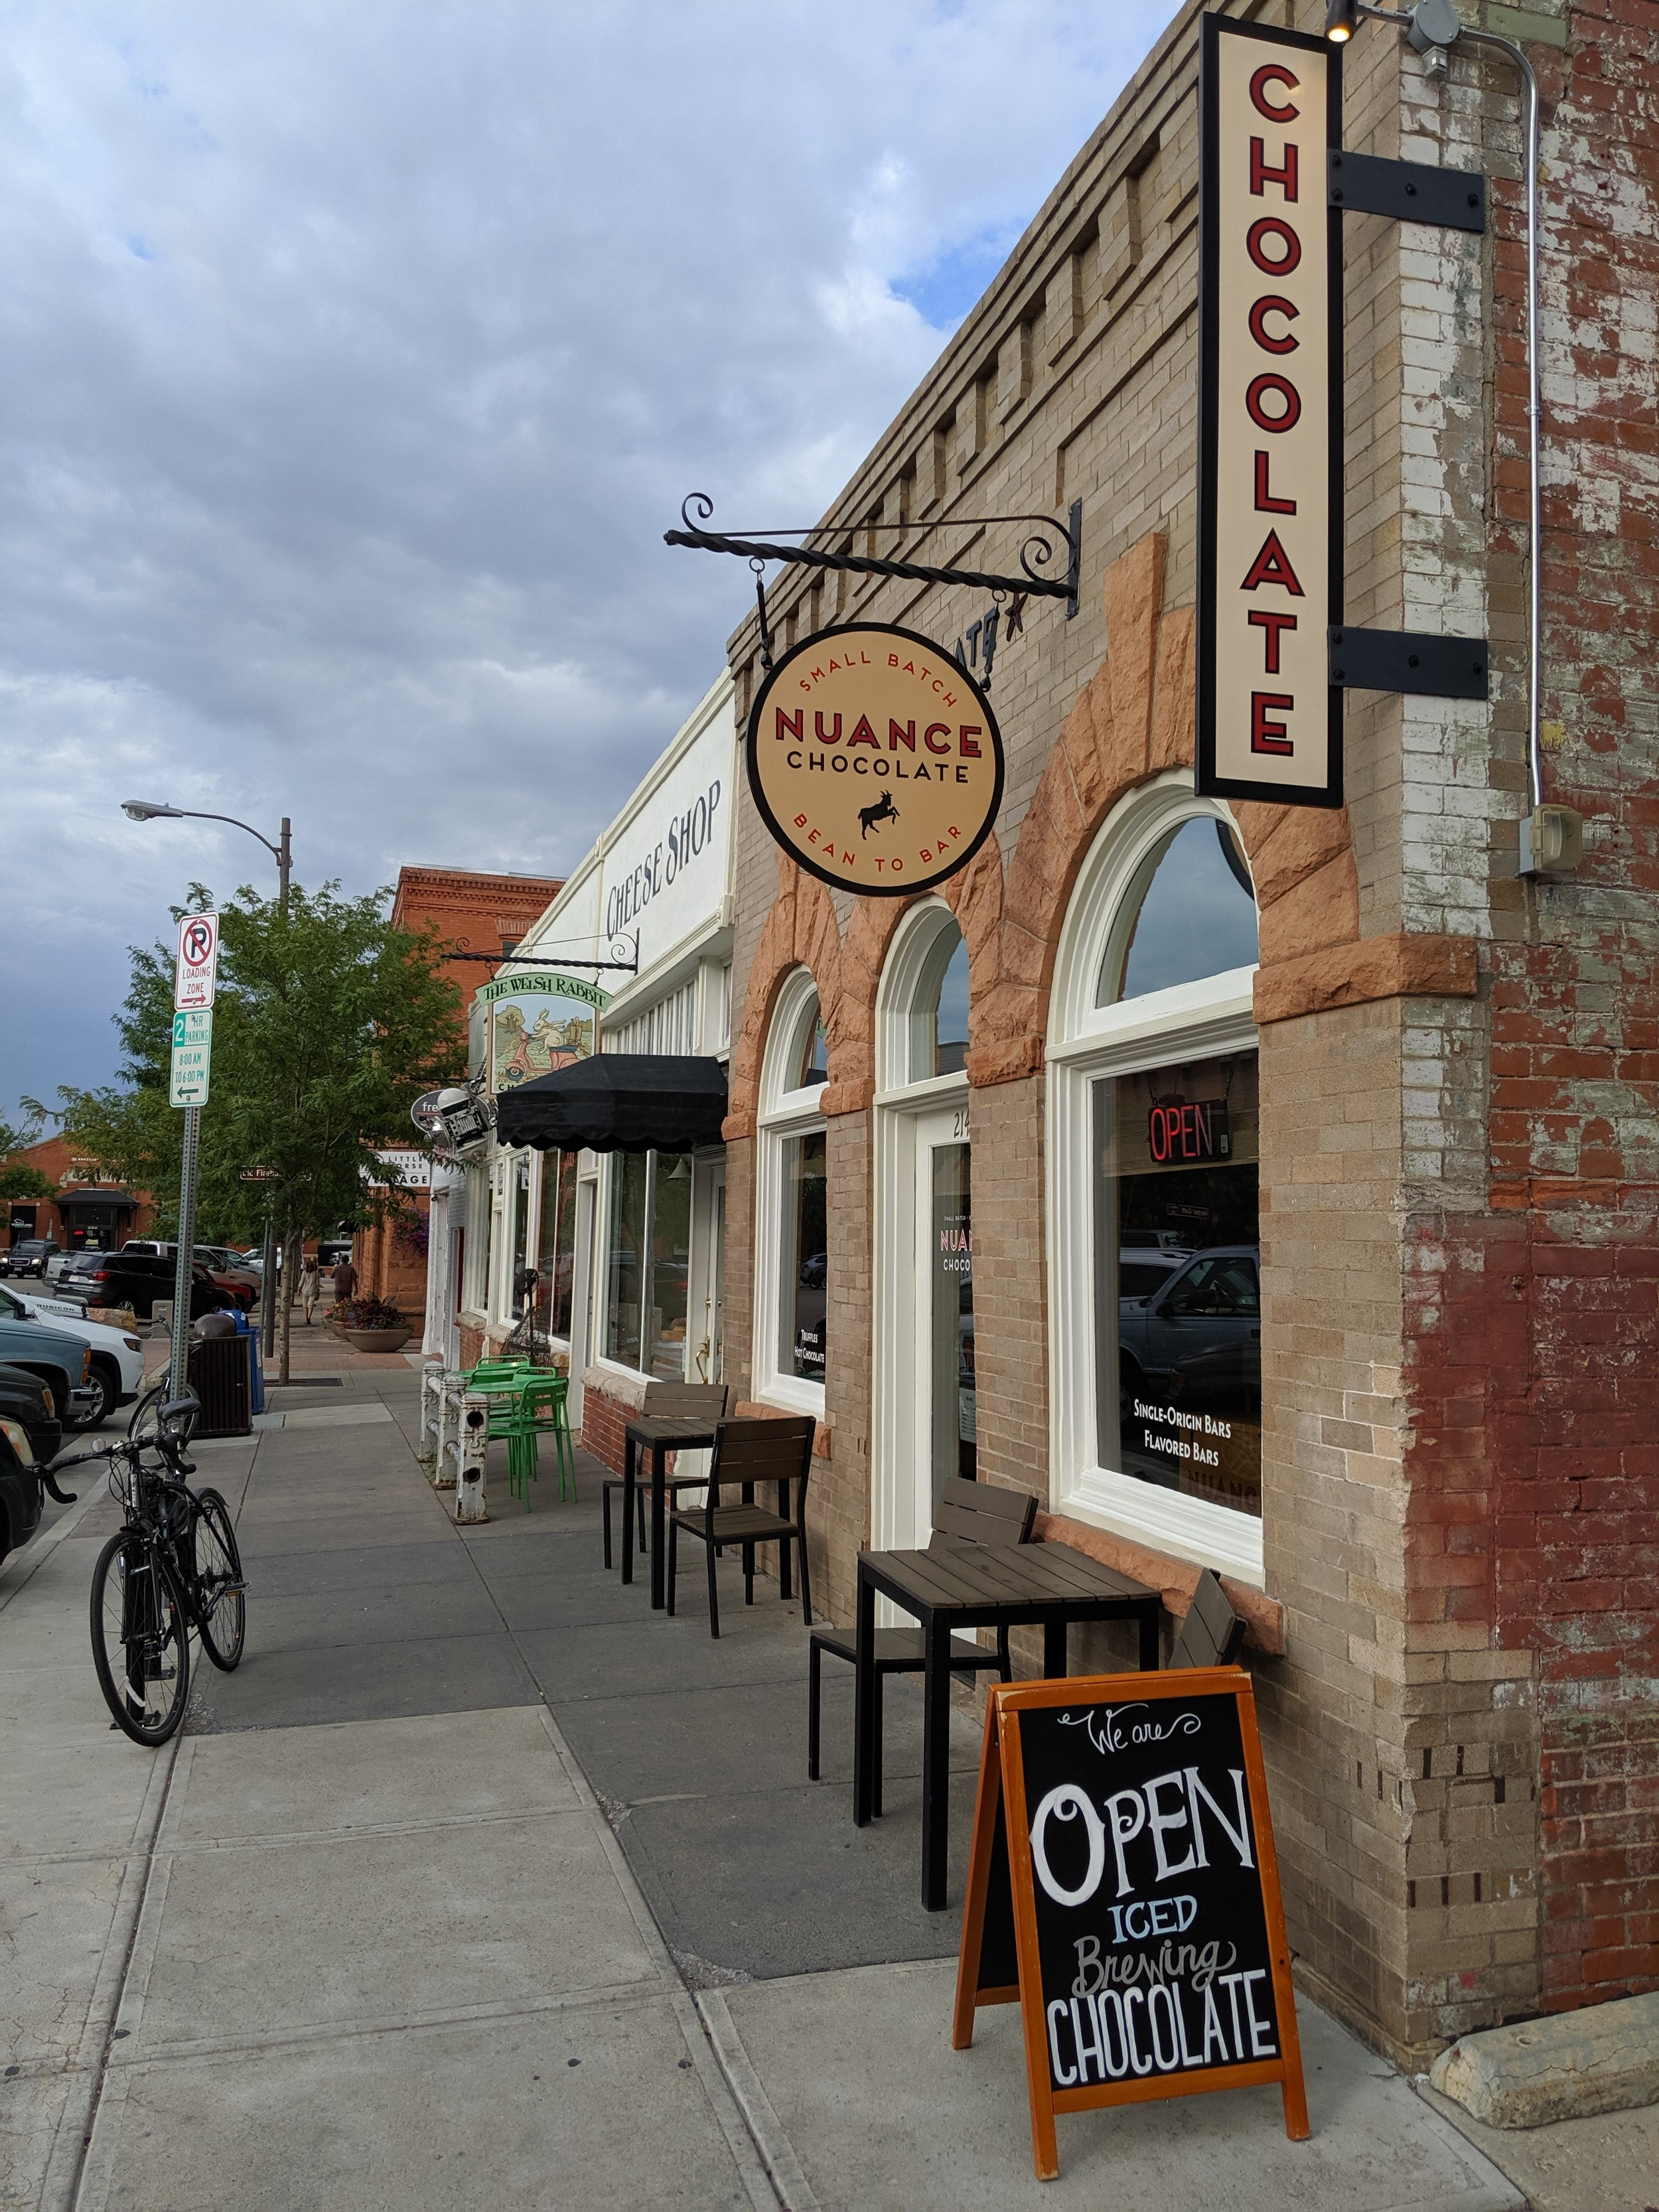 One of our new favorite places in Old Town Fort Collins, Colorado.